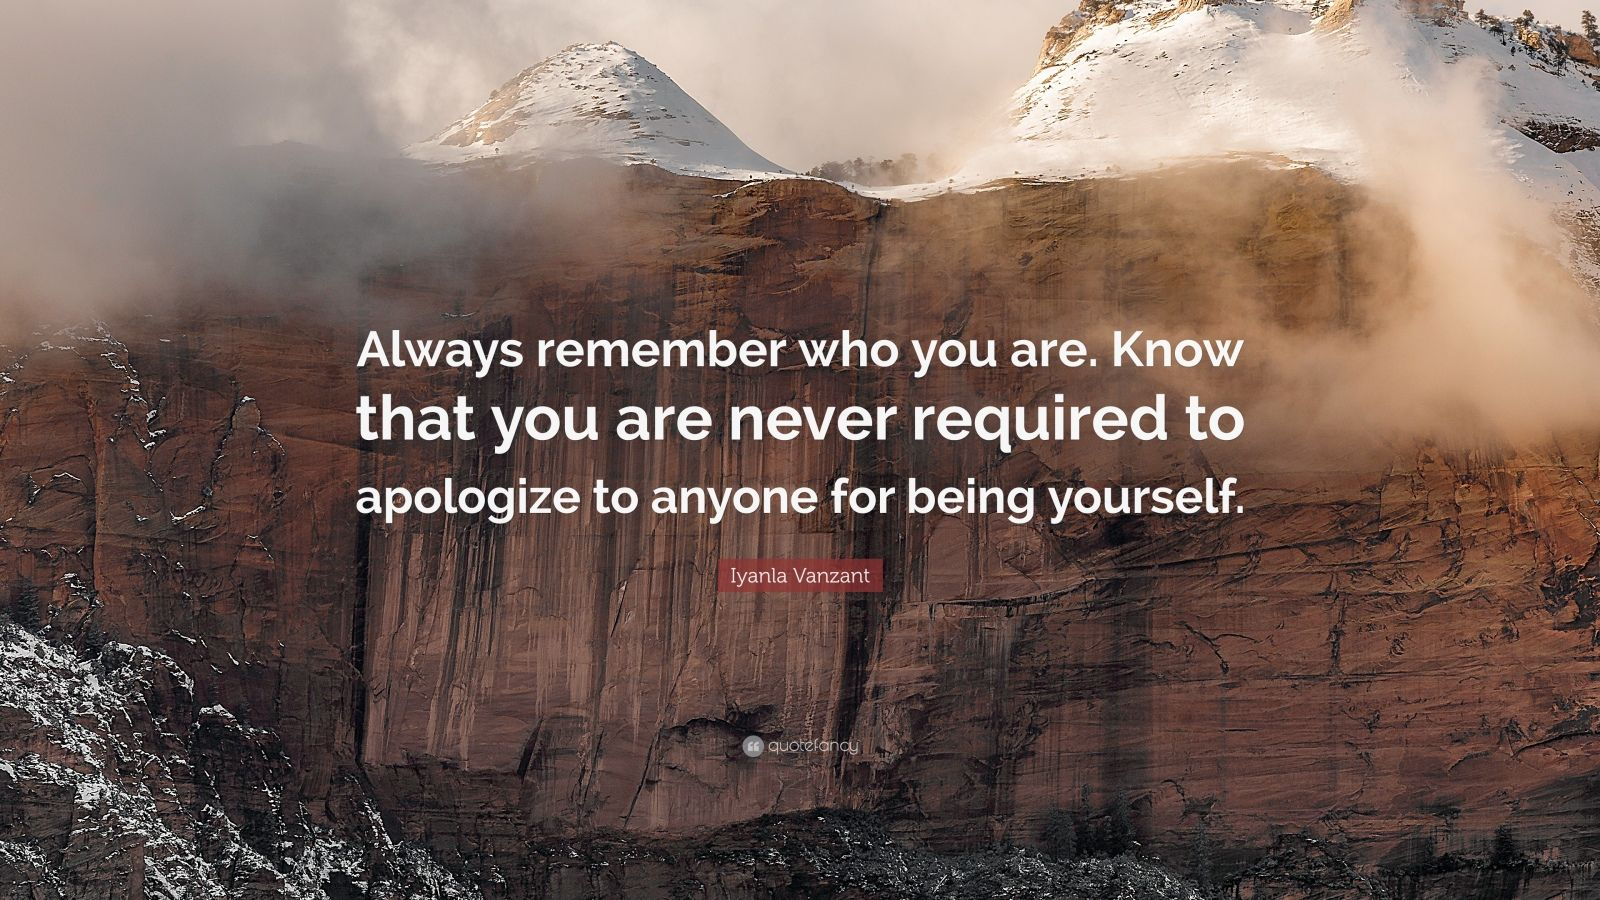 """Iyanla Vanzant Quote: """"Always remember who you are. Know that you are never required to apologize to anyone for being yourself."""""""